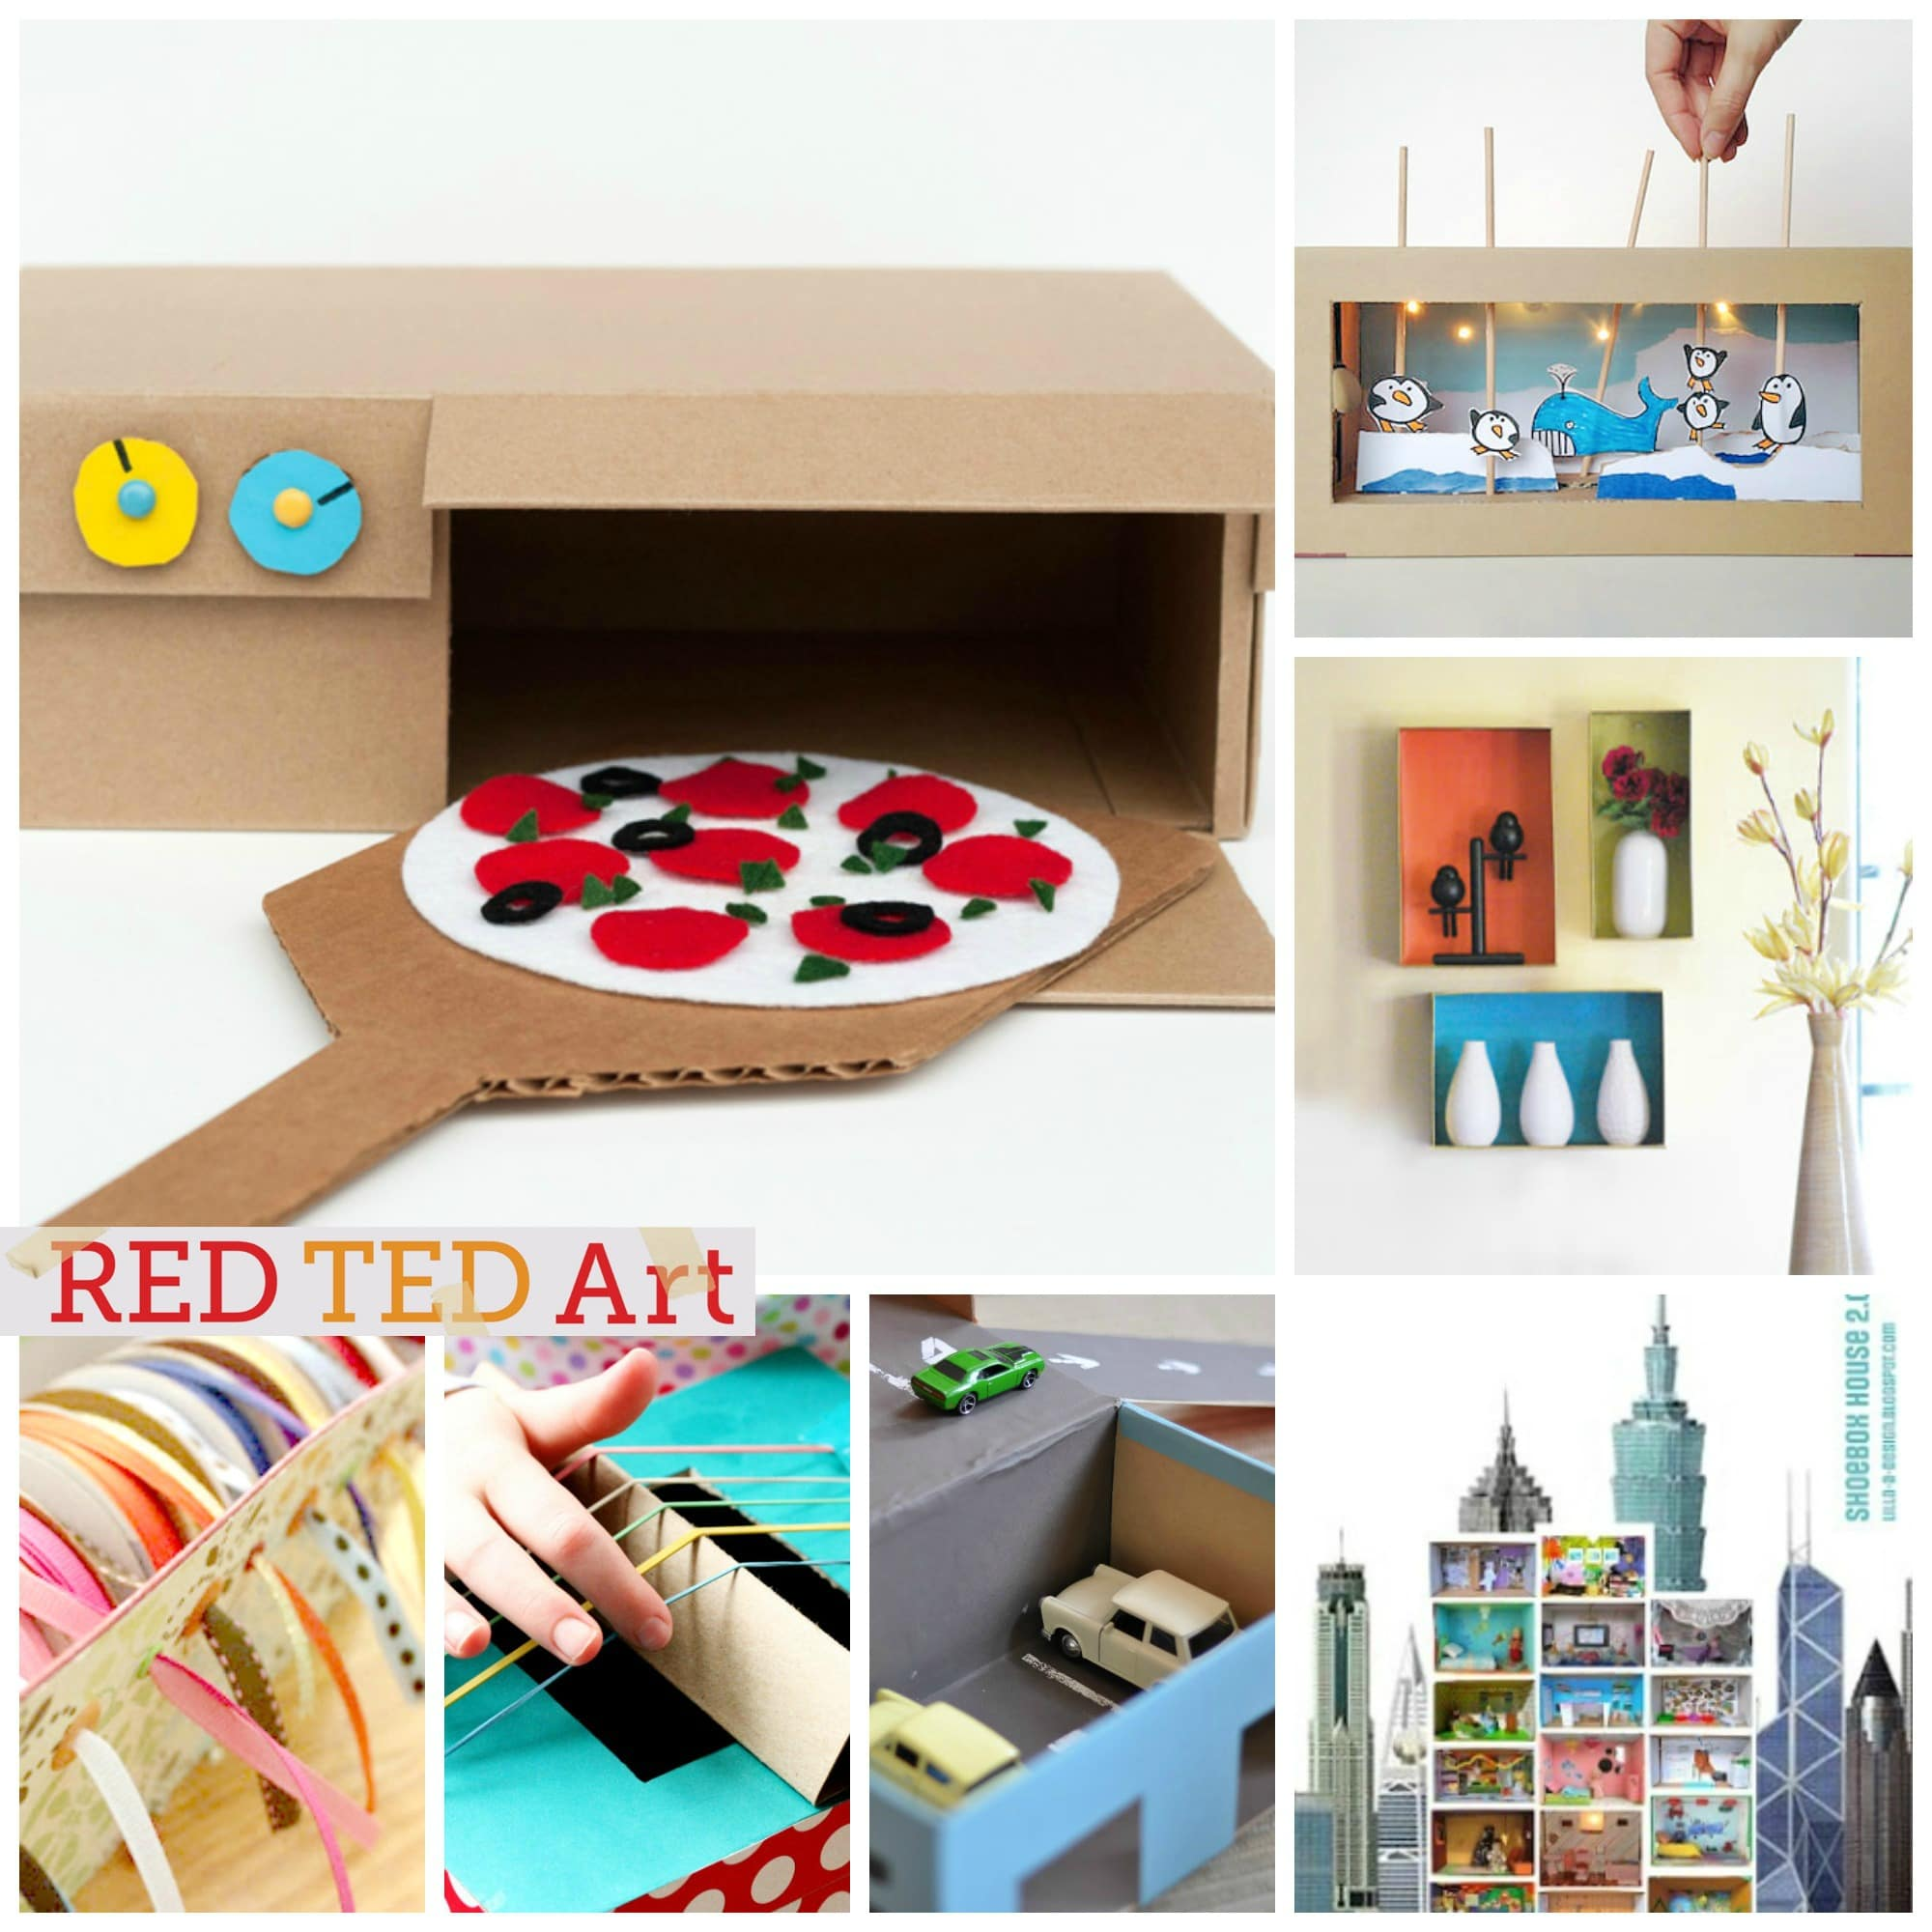 30 shoe box craft ideas red ted art 39 s blog for What to do with old mailbox